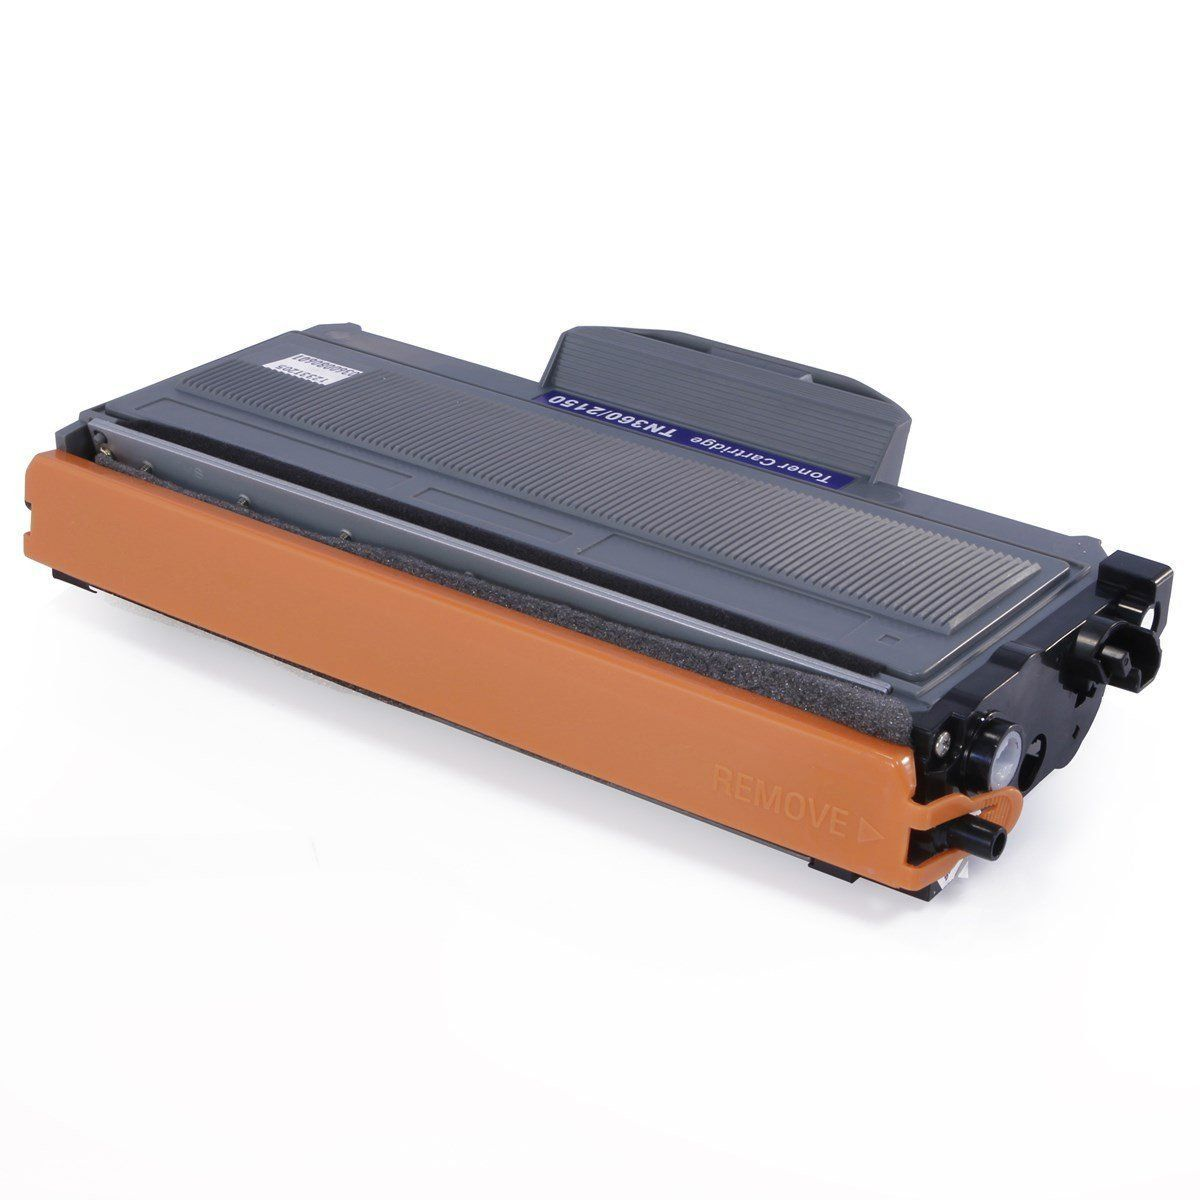 TONER BROTHER TN 360 2.6K - (7030/2140/7320) - PREMIUM